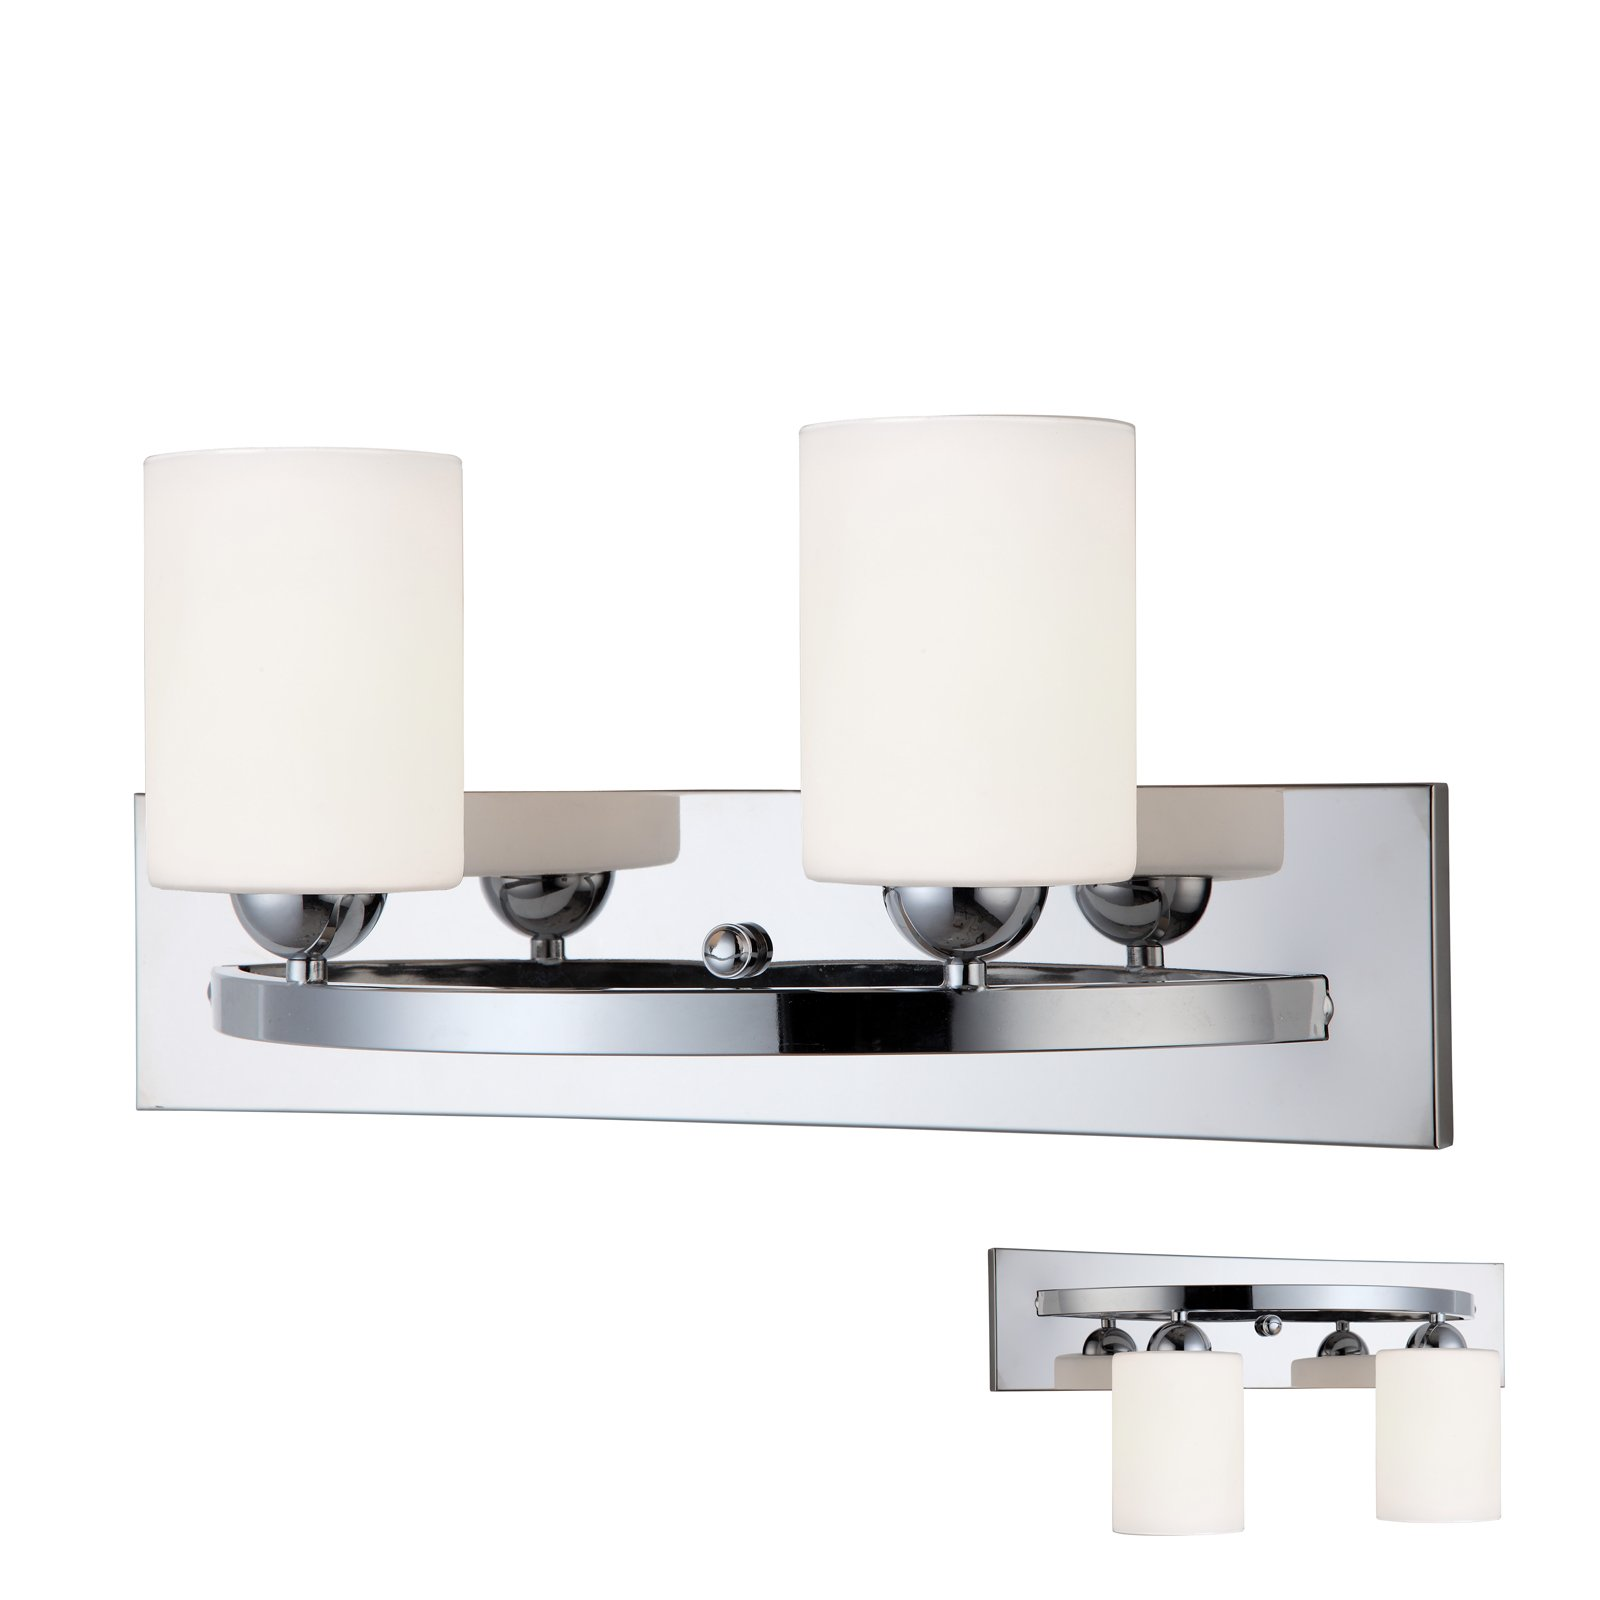 Chrome 2 Globe Vanity Bath Light Bar Interior Lighting Fixture by HowPlumb (Image #3)